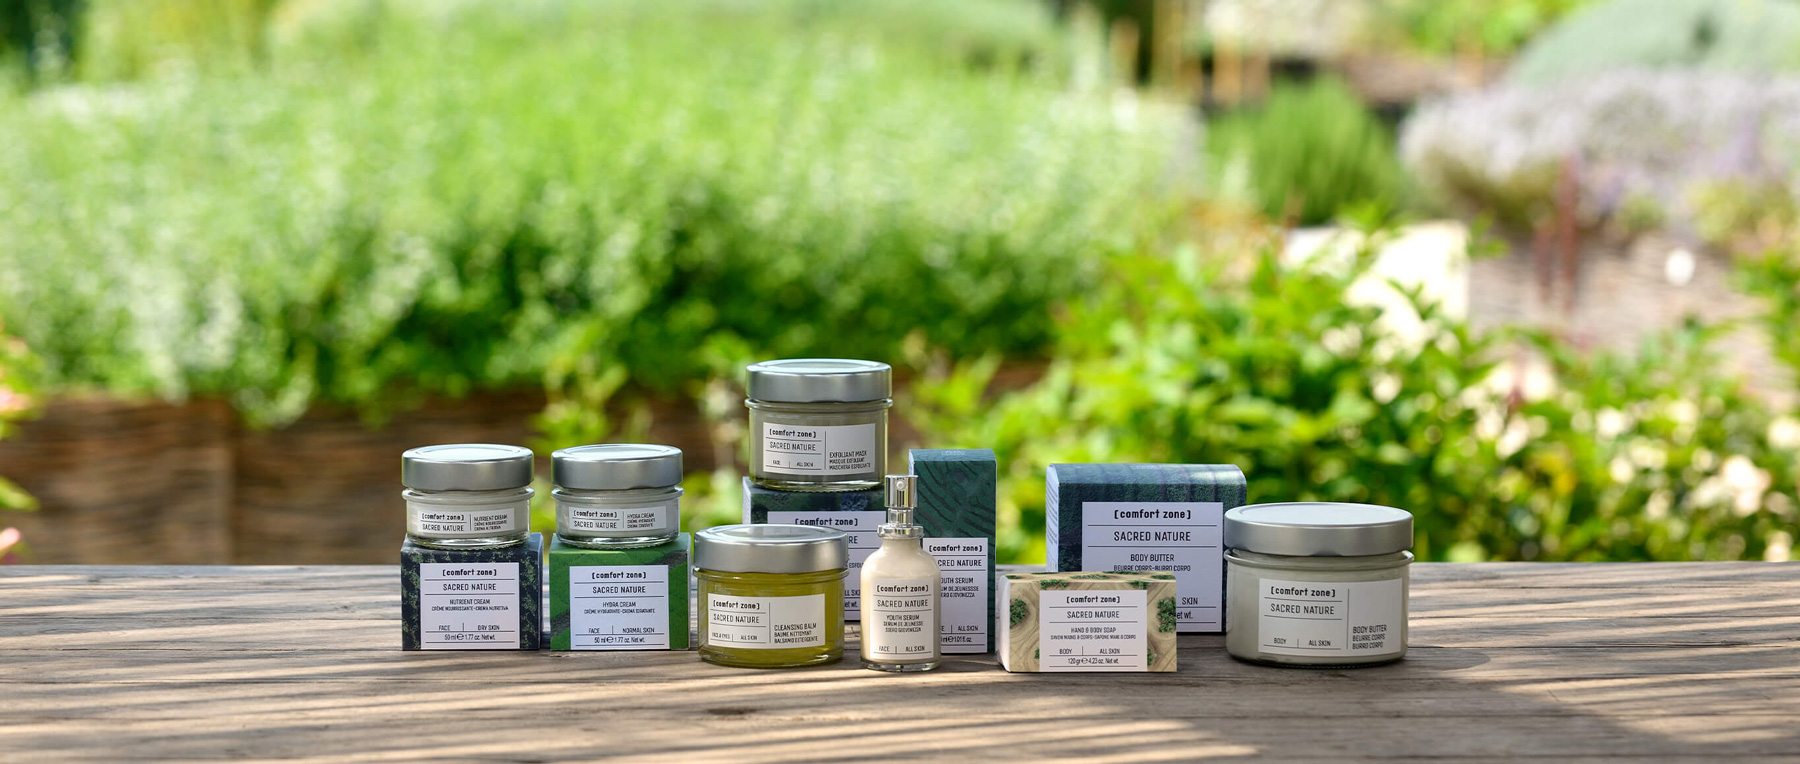 Sacred Nature Products